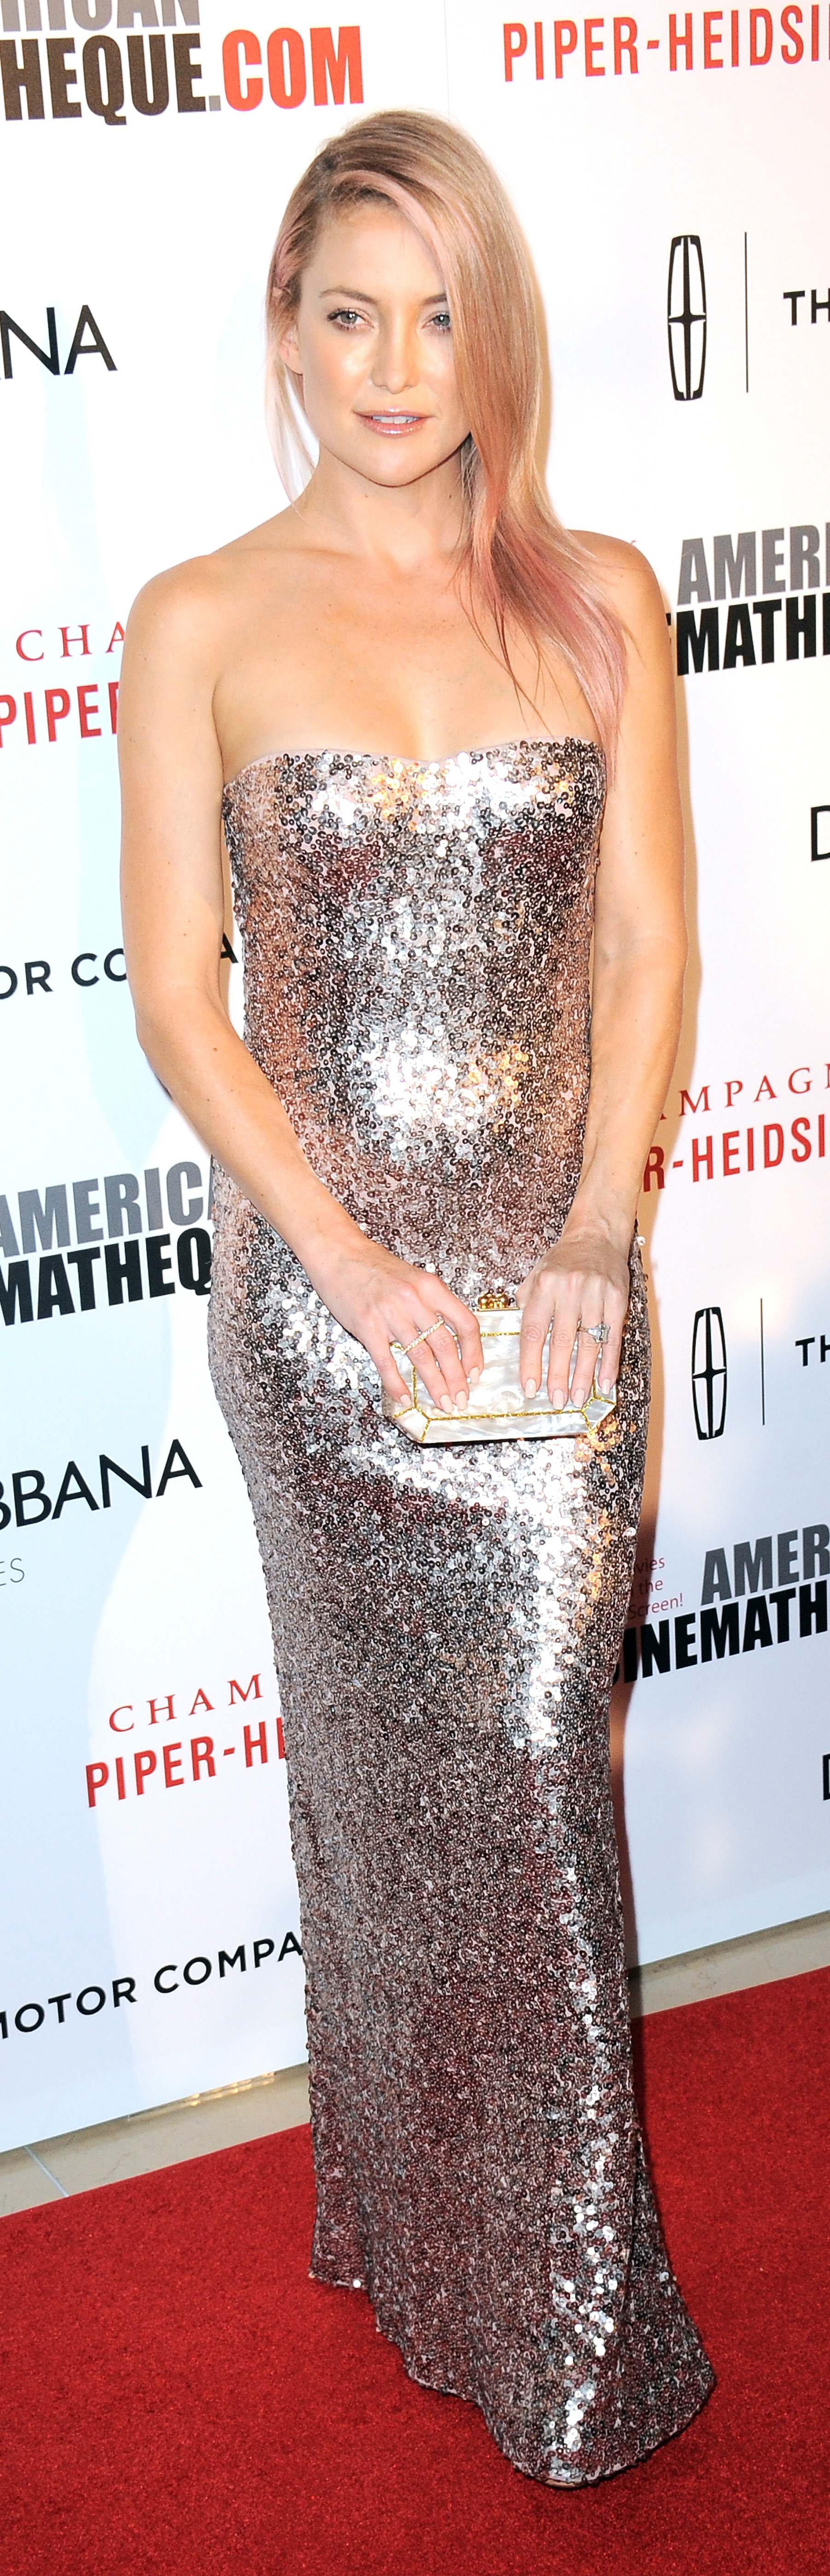 101 Nearly Naked Celebrities on the Red Carpet ...